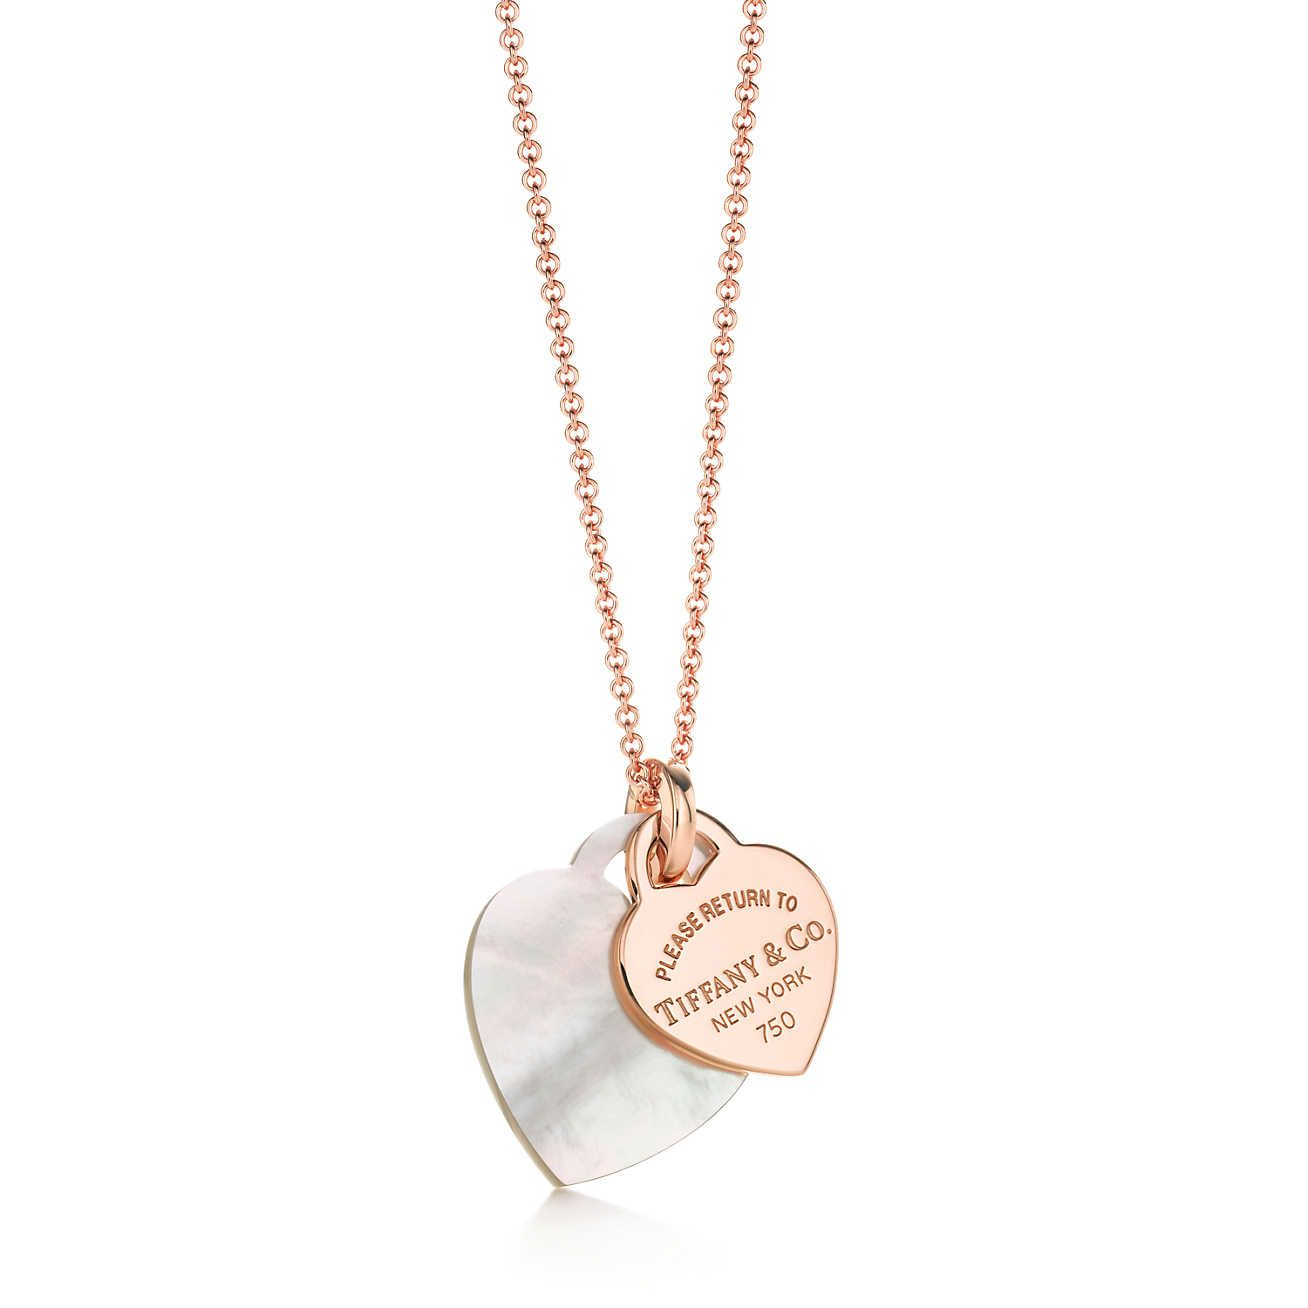 Return To Tiffany Double Heart Tag Pendant Tiffany Pearls Diamond Drop Necklace Necklace